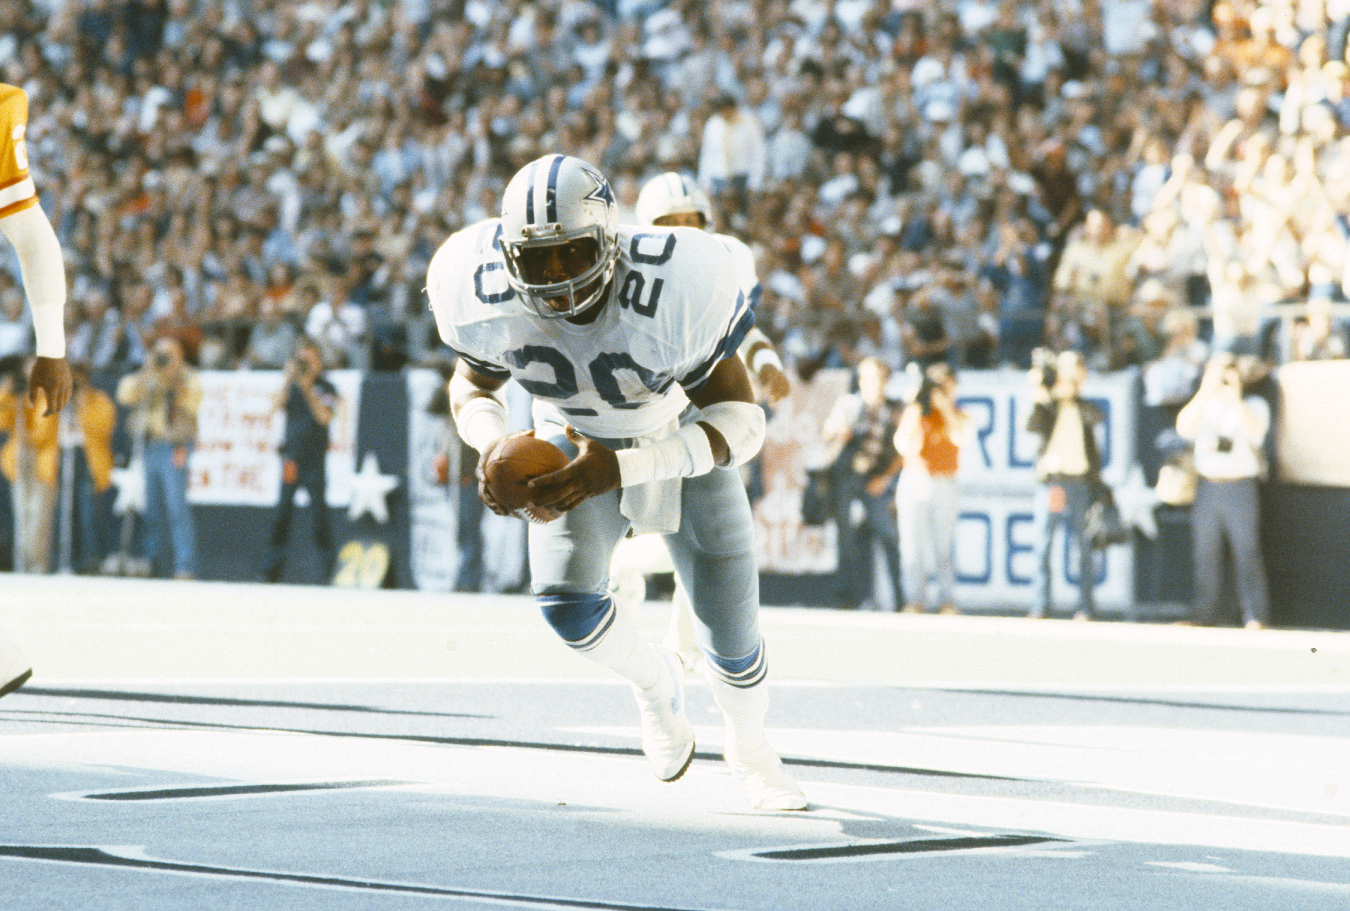 In his career, Ron Springs shared some of the load in the Dallas Cowboys' backfield with Tony Dorsett. He, however, ultimately died too soon.